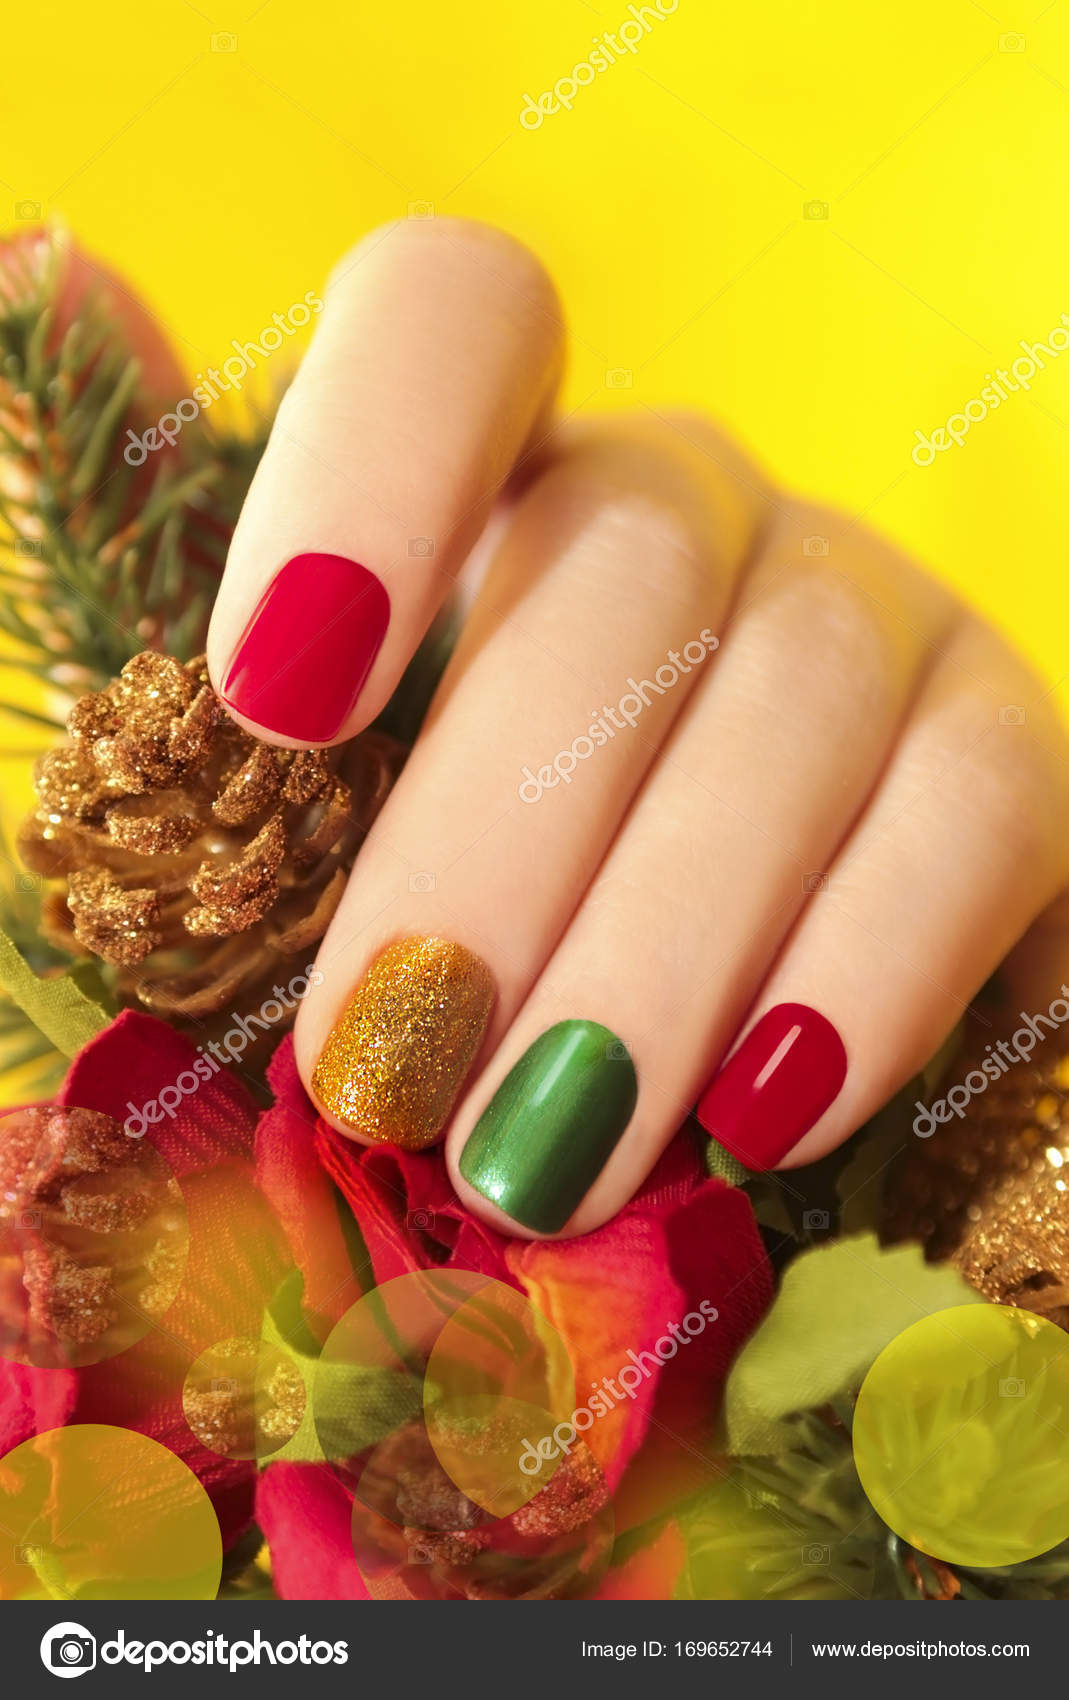 Multicolor manicure with red,green and yellow brilliant